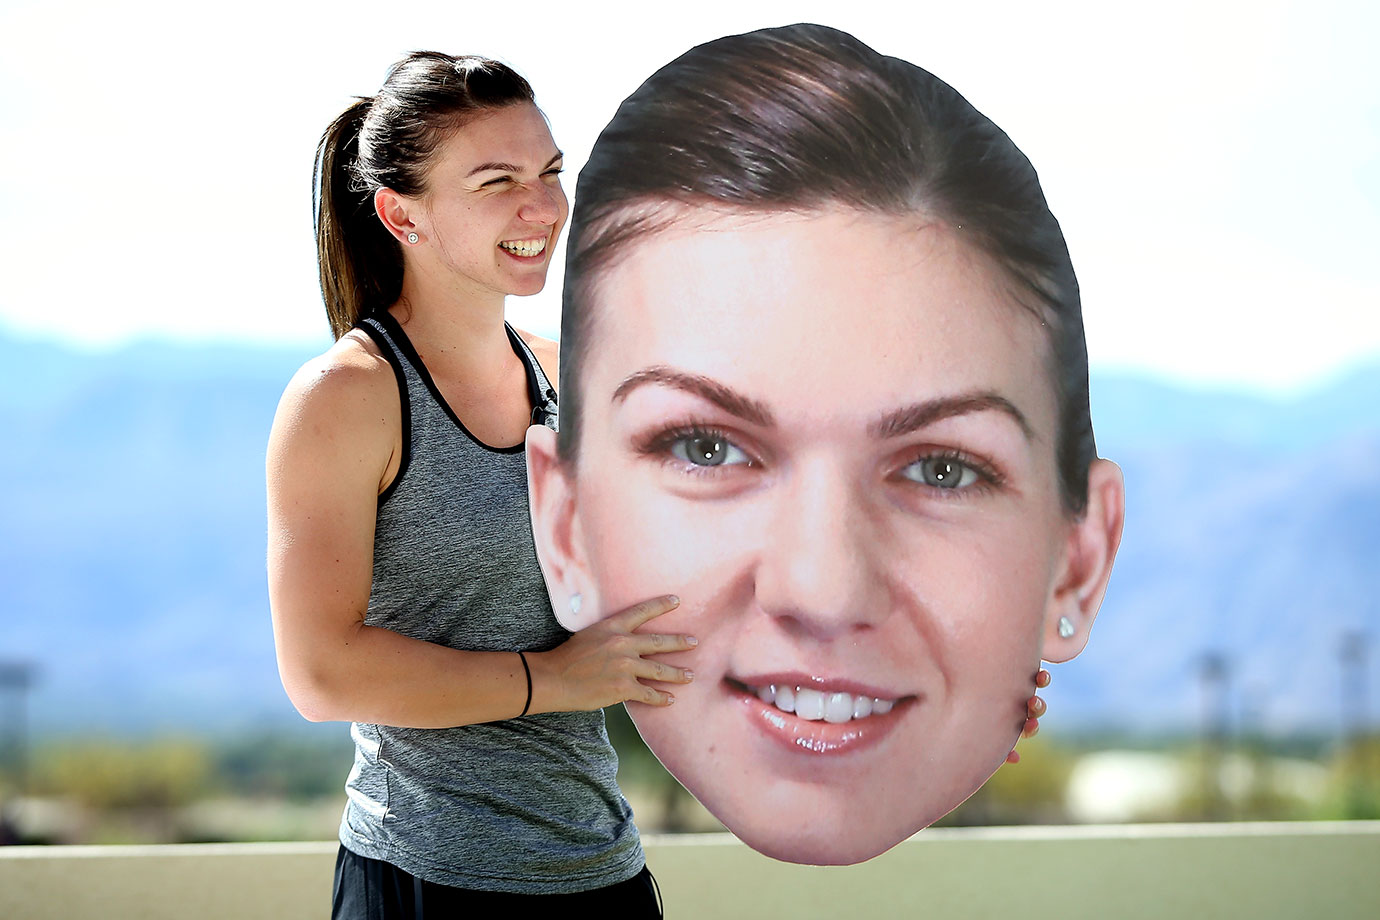 Simona Halep of Romania holds an oversize likeness of her face at the WTA All-Access Hour during the BNP Paribas Open in Indian Wells, Calif.